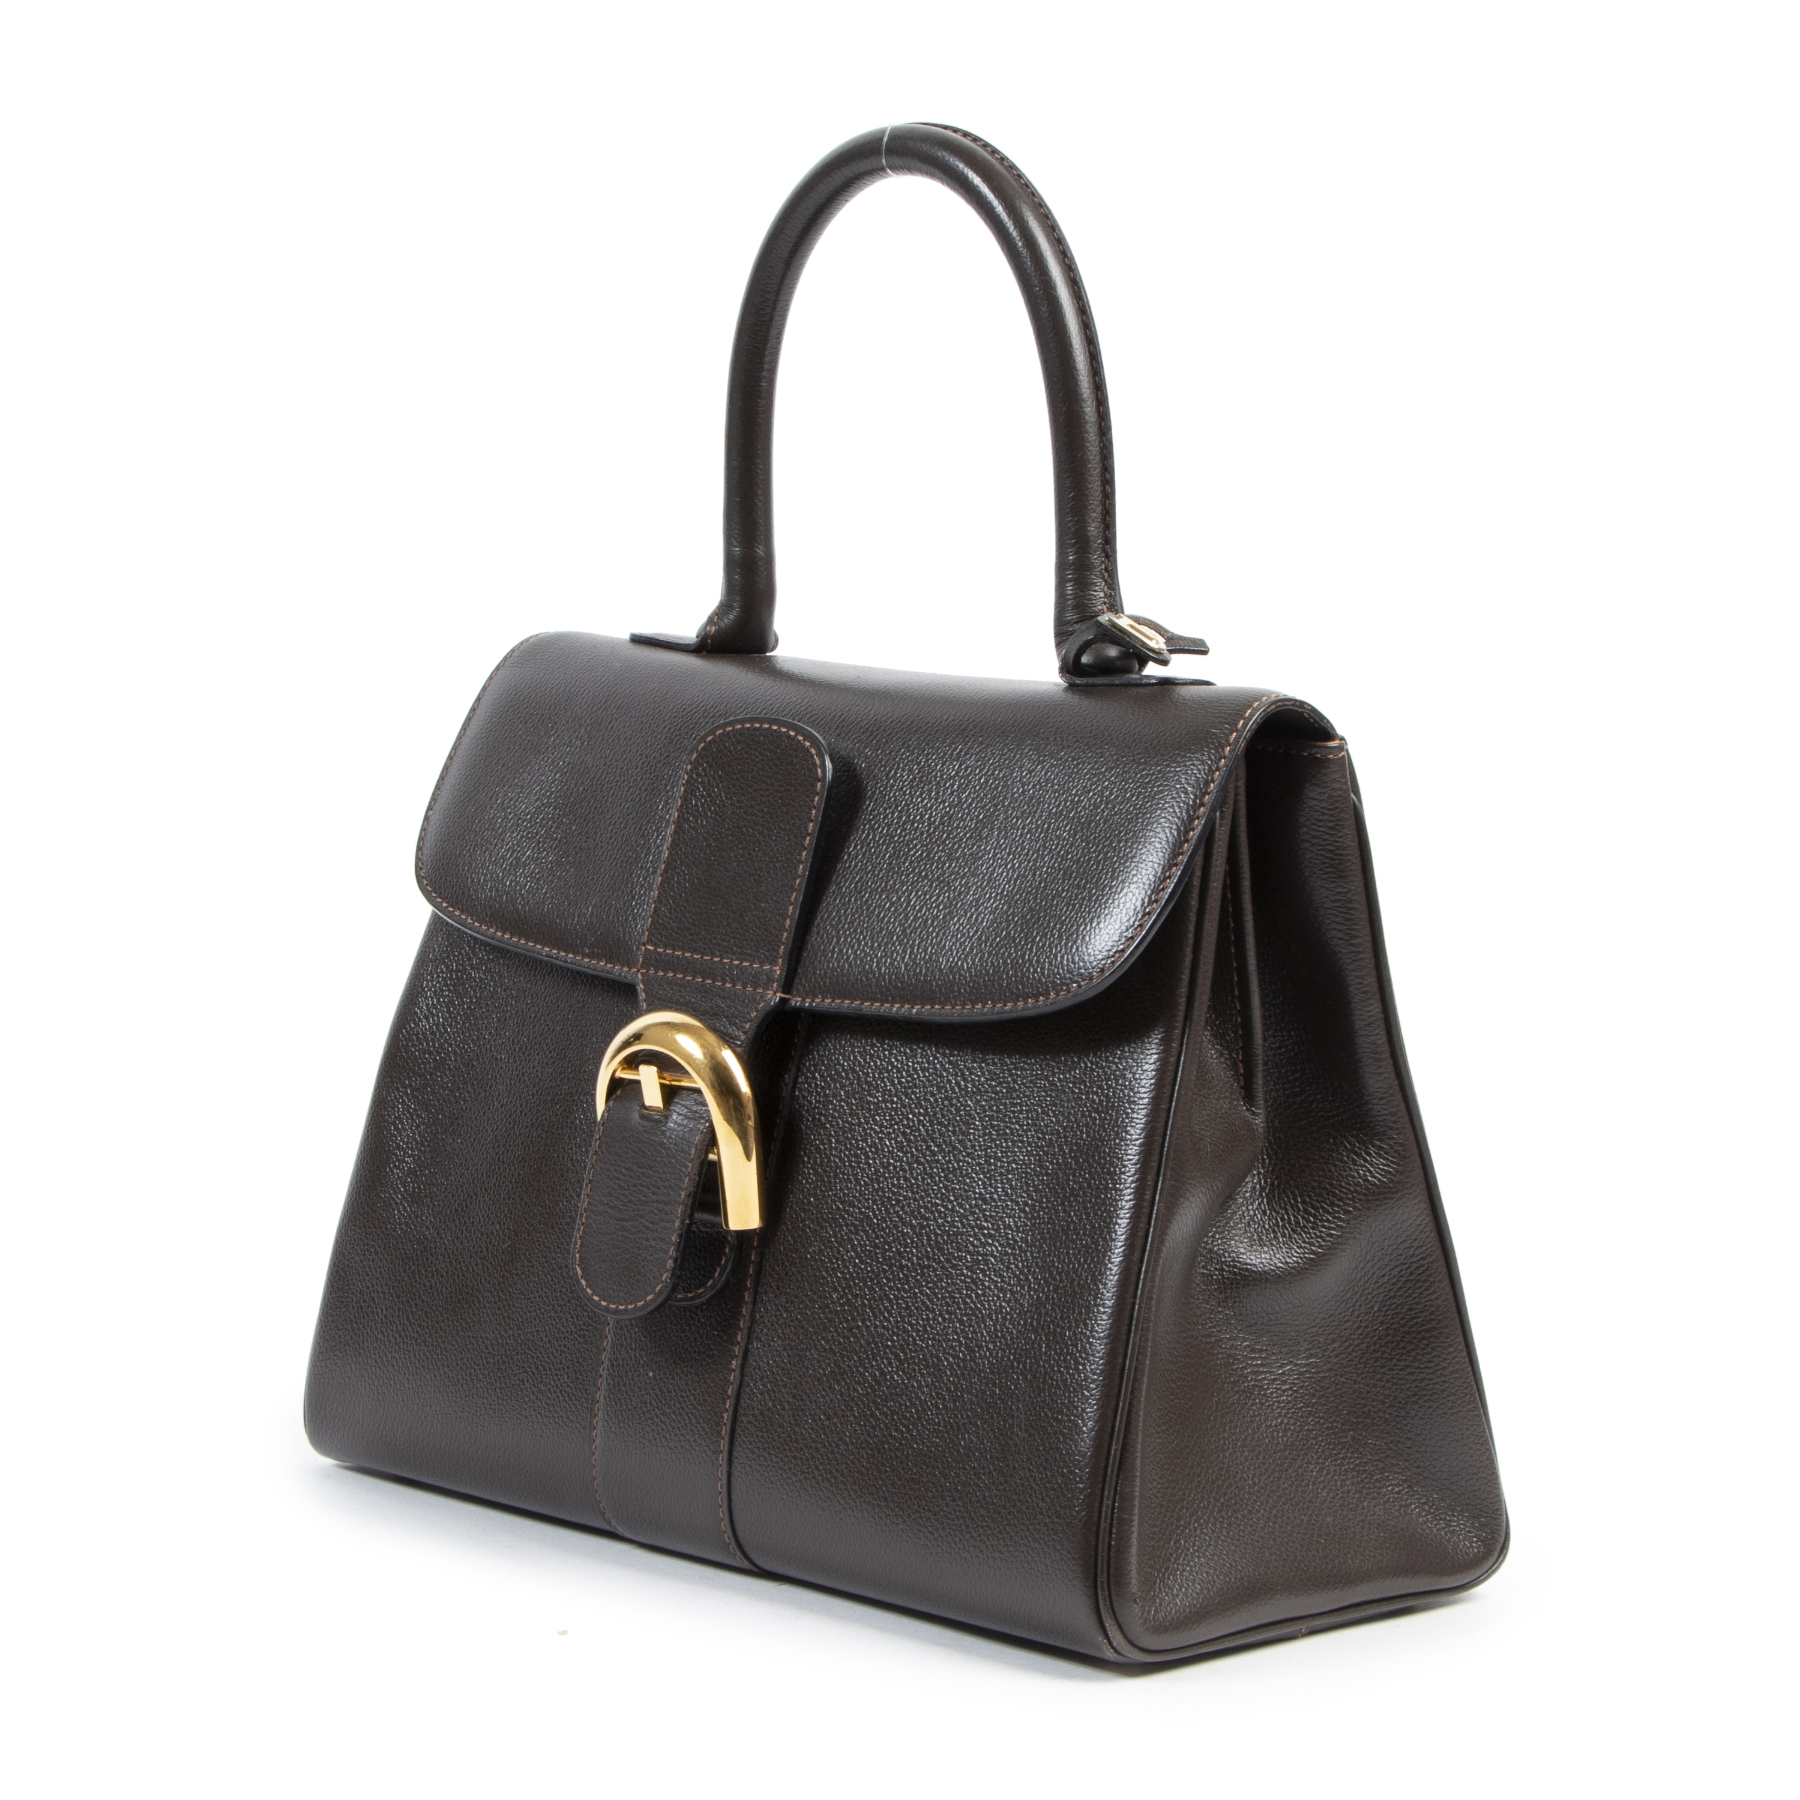 We buy and sell your authentic designer bags online at Labellov